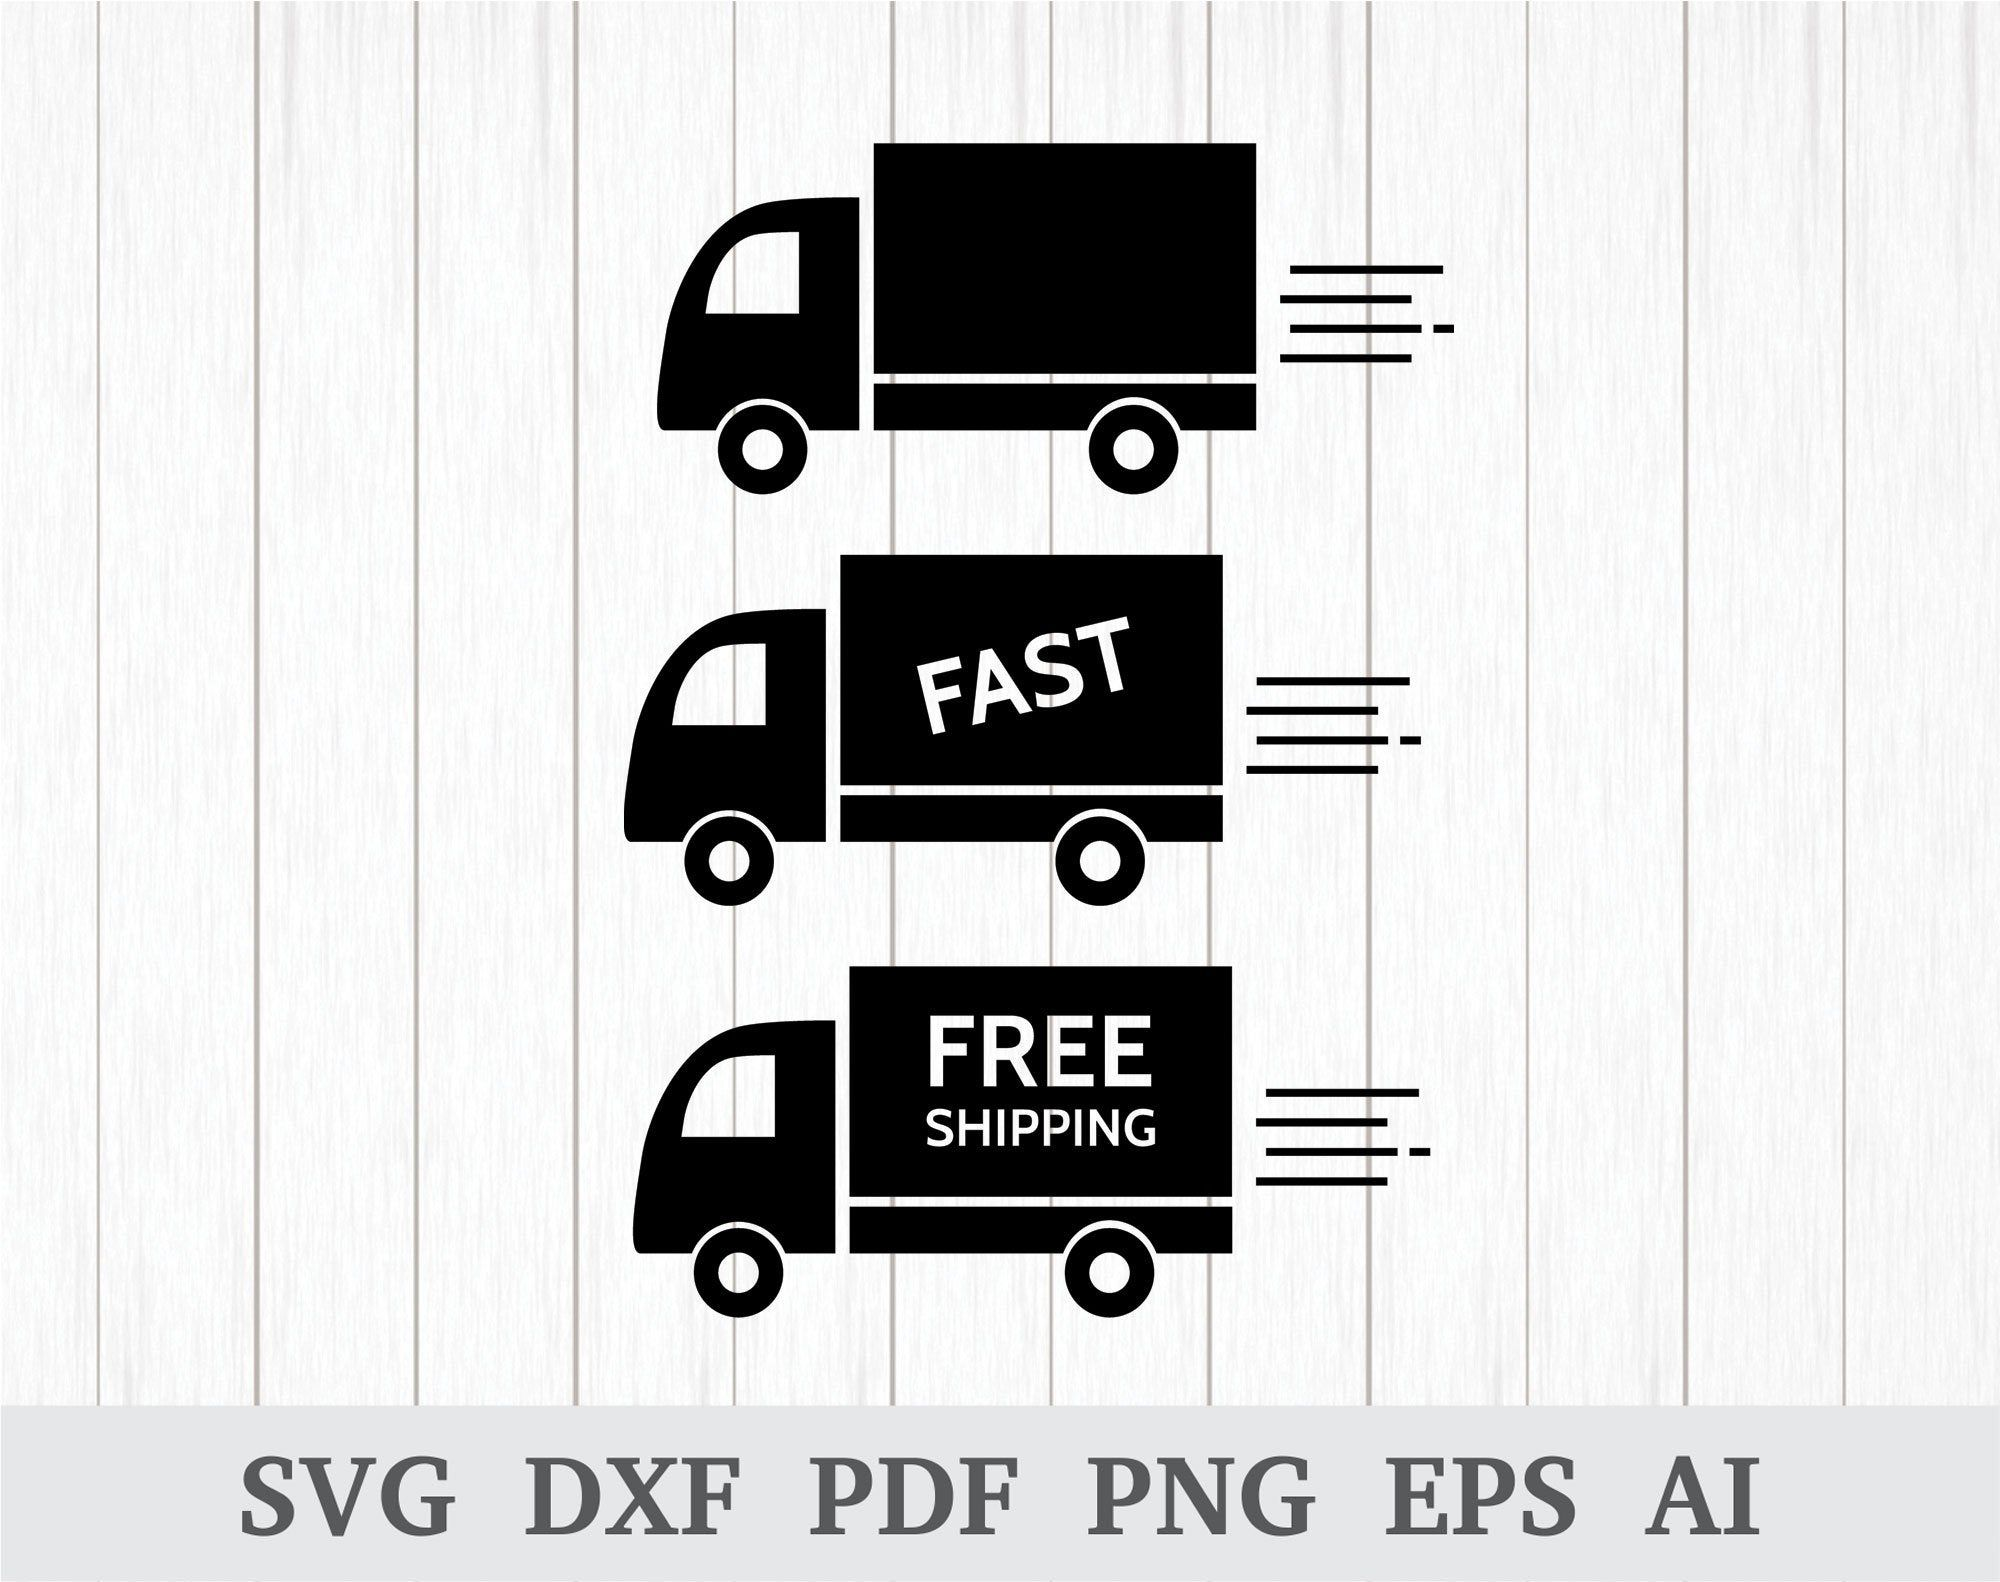 Delivery Van Svg Fast Delivery Svg Free Shipping Svg Ecommerce